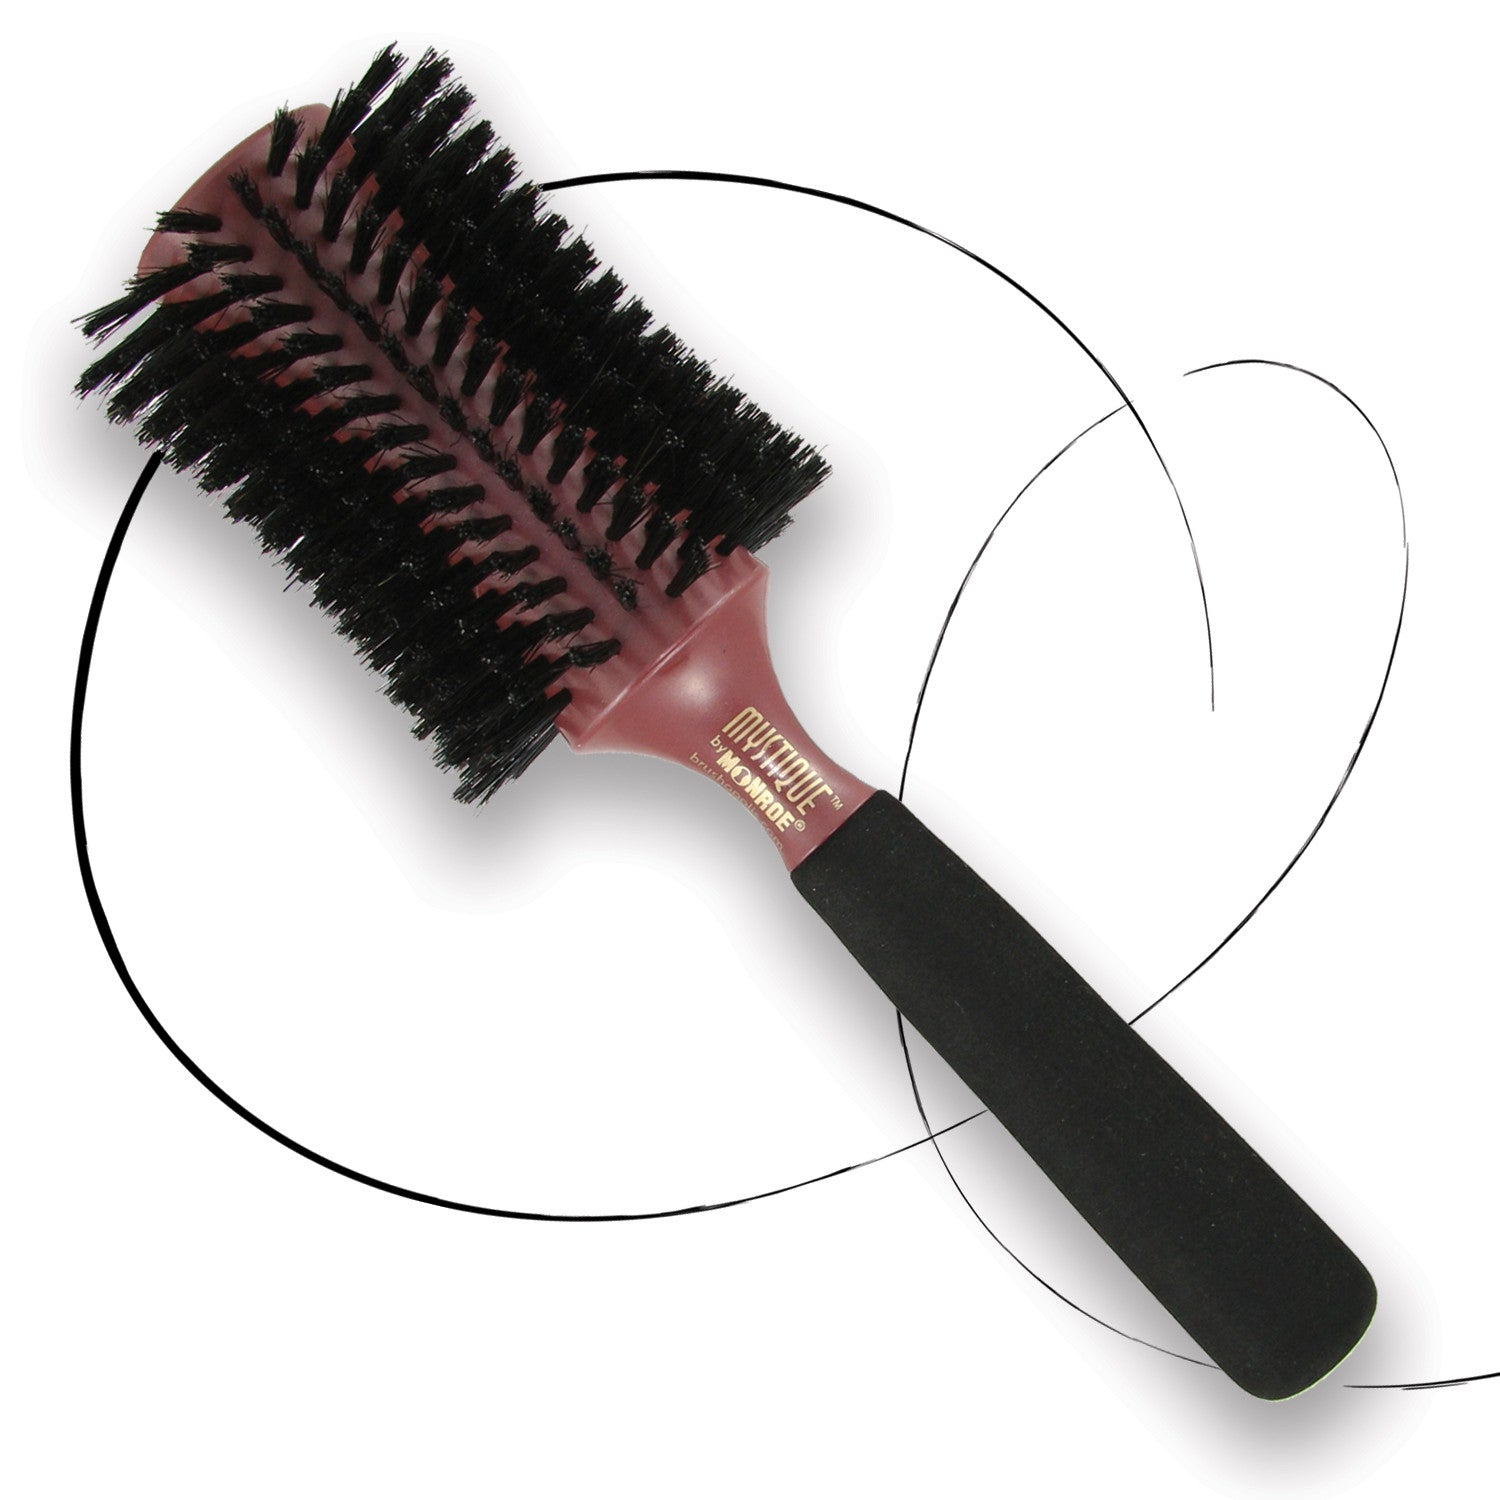 Professional Brush Set for Medium to Coarse Hair